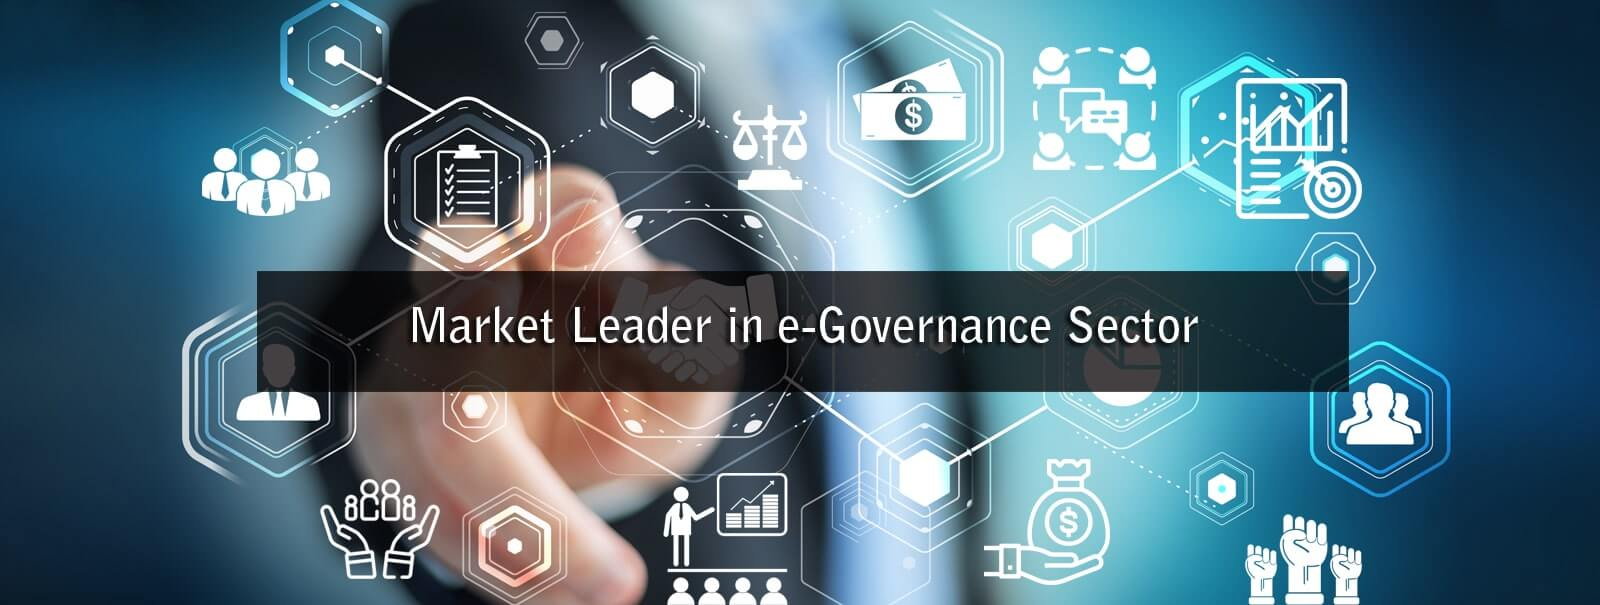 Market Leader in e- governance sector